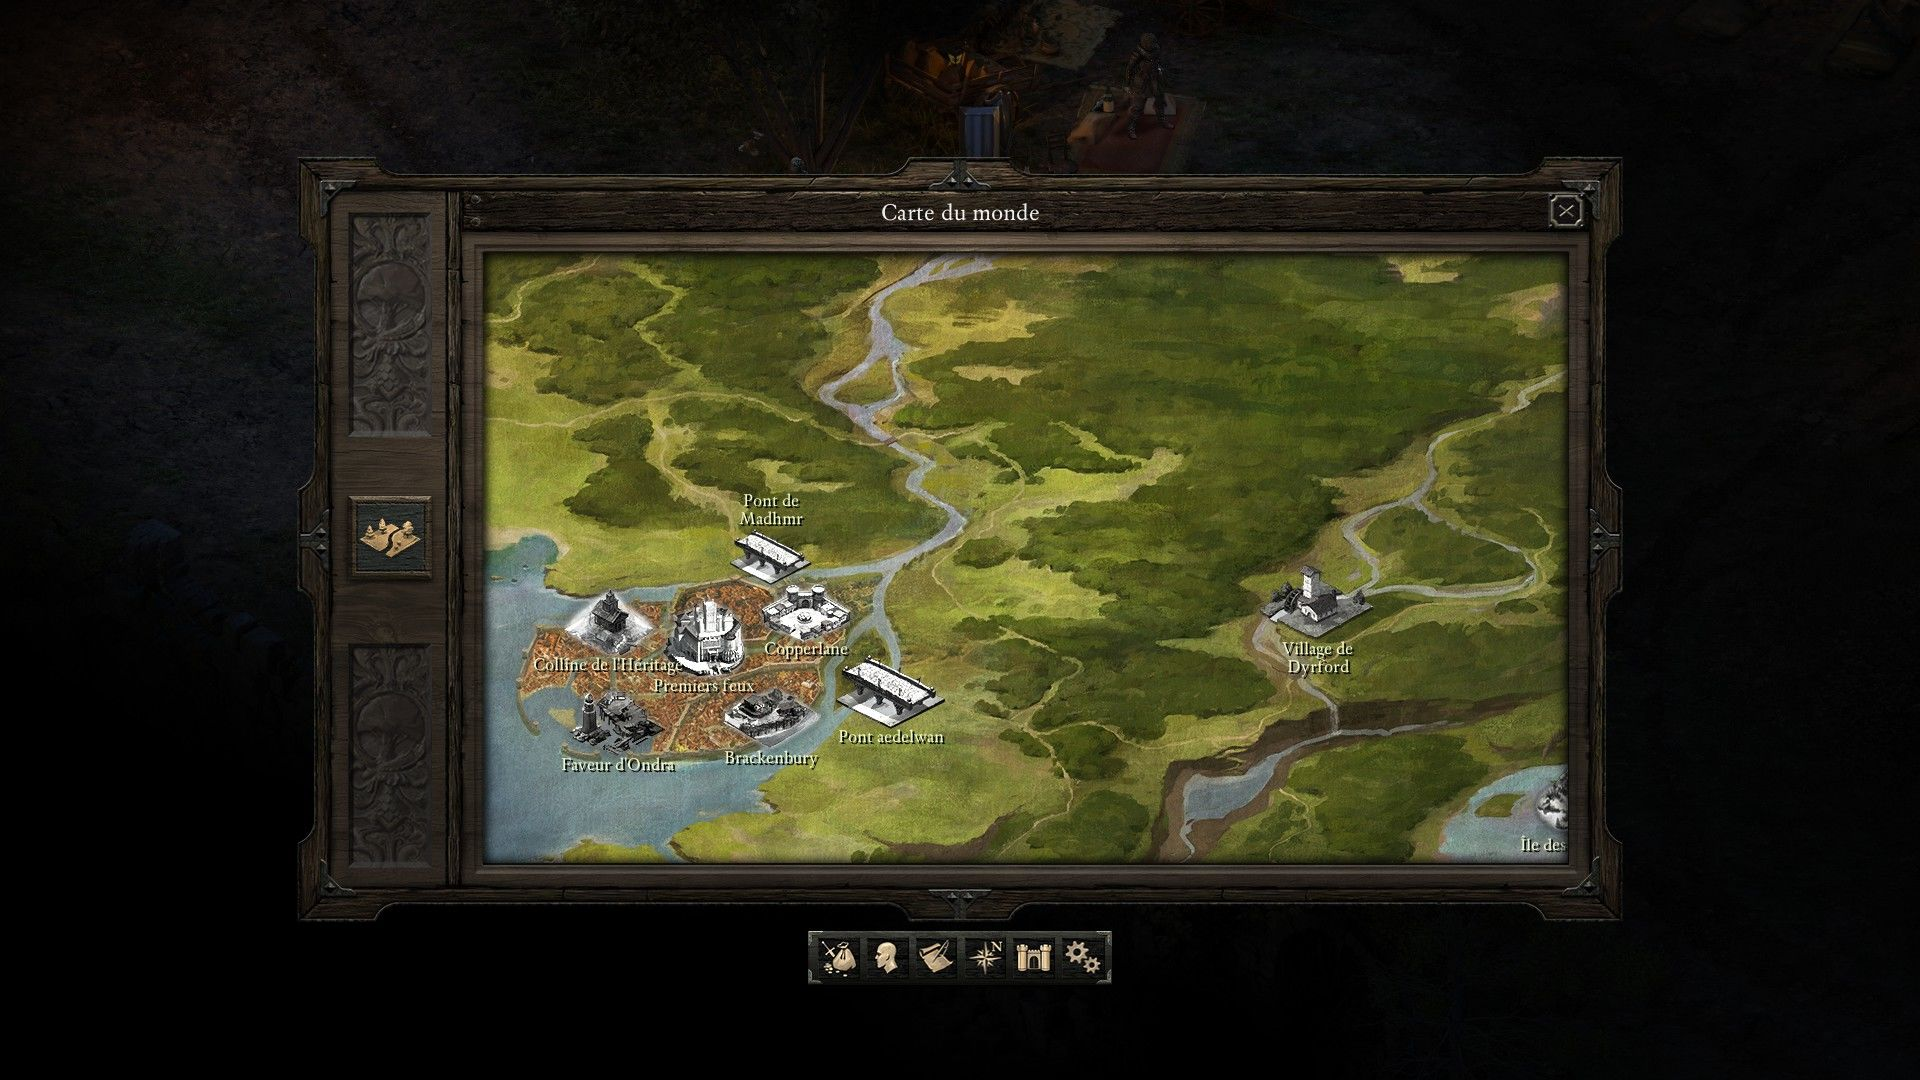 Pillars Of Eternity World Map Complete.Pillars Of Eternity Screenshots For Windows Mobygames